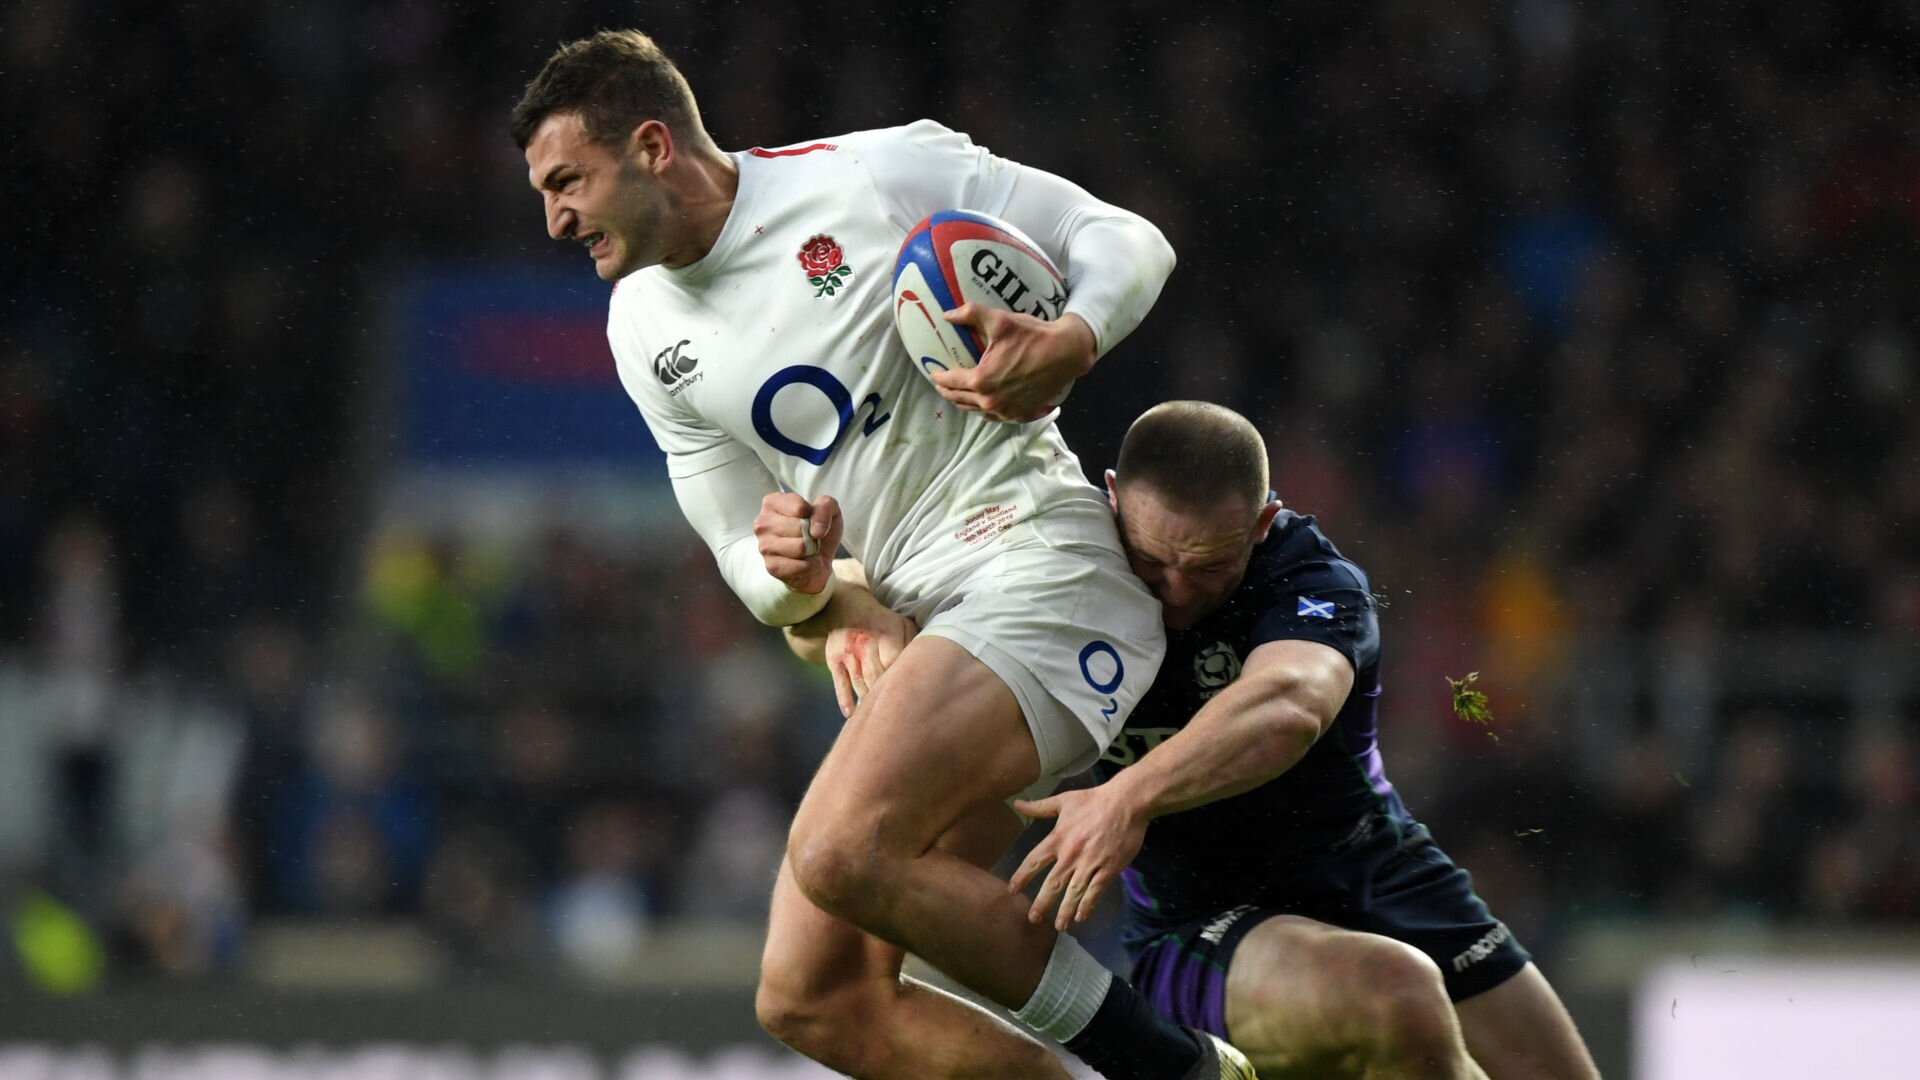 Phone call from coach convinced Scotland centre to stay put